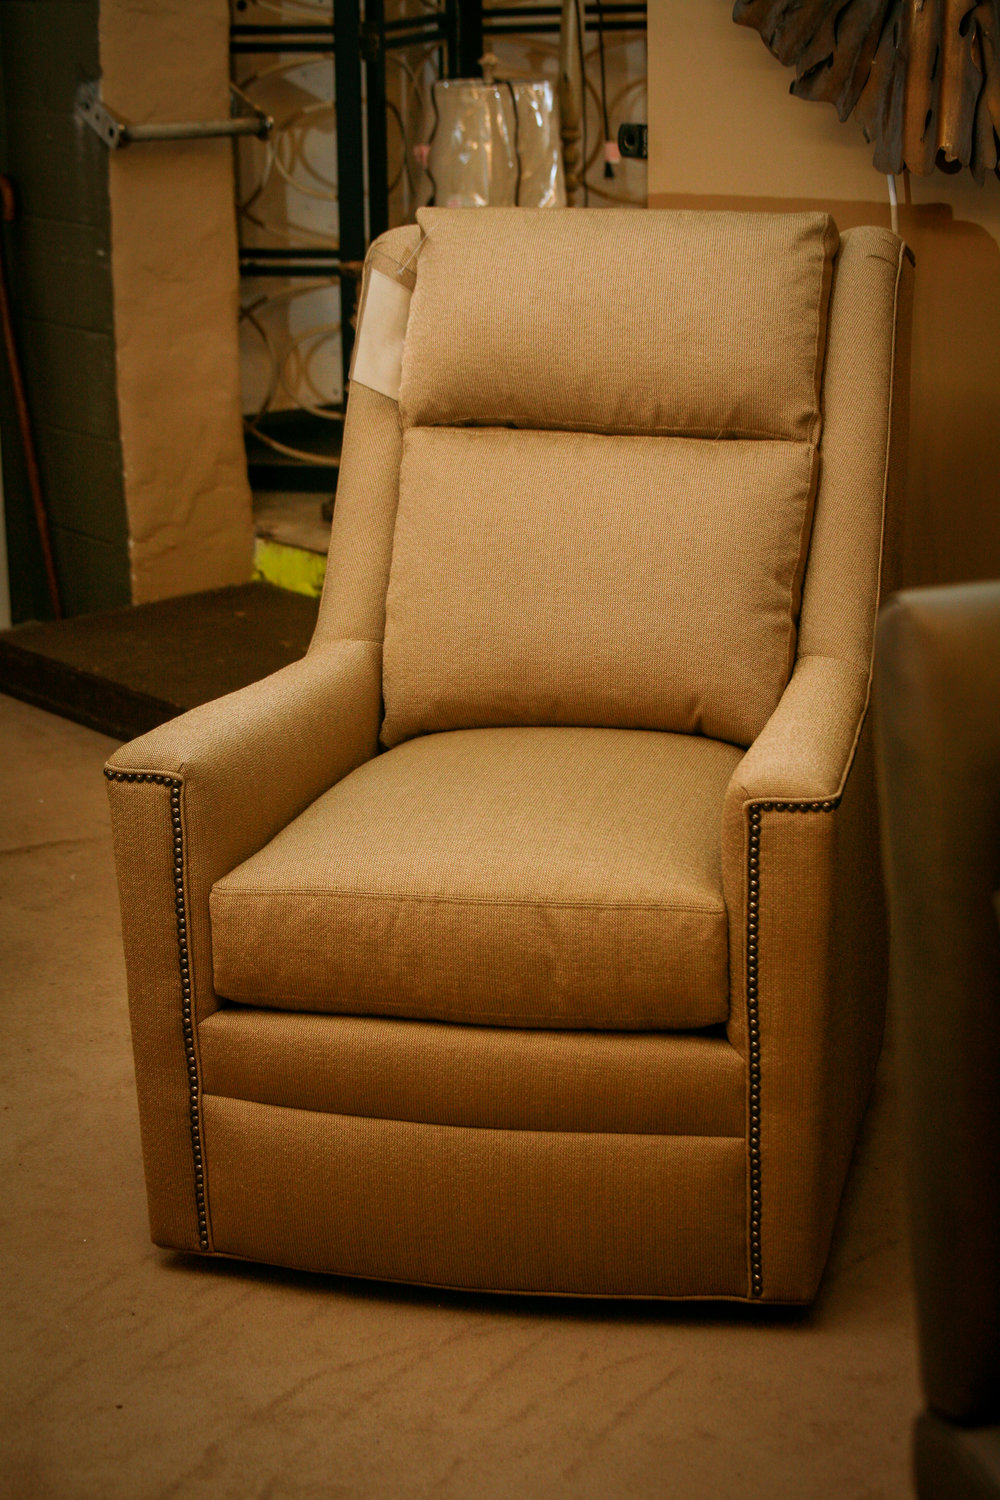 Huntington House Swivel Chair